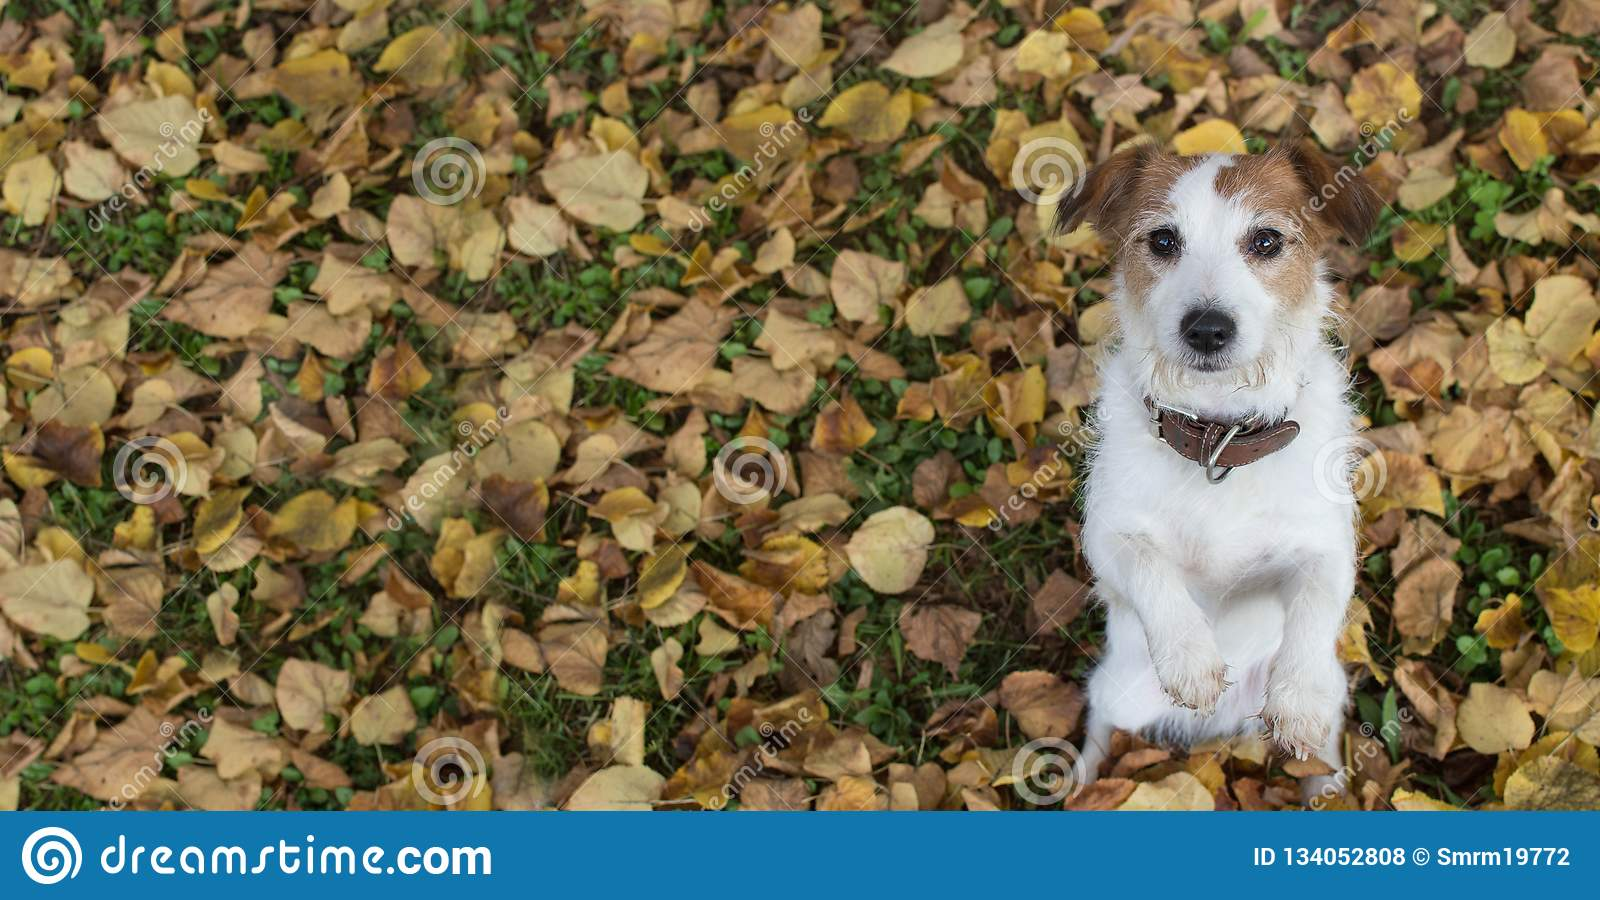 AUTUMN DOG BANNER BACKGROUNDS. CUTE JACK RUSSELL DOG SITTING ON TWO LEGS BEGGING FOOD ON YELLOW FALL LEAVES